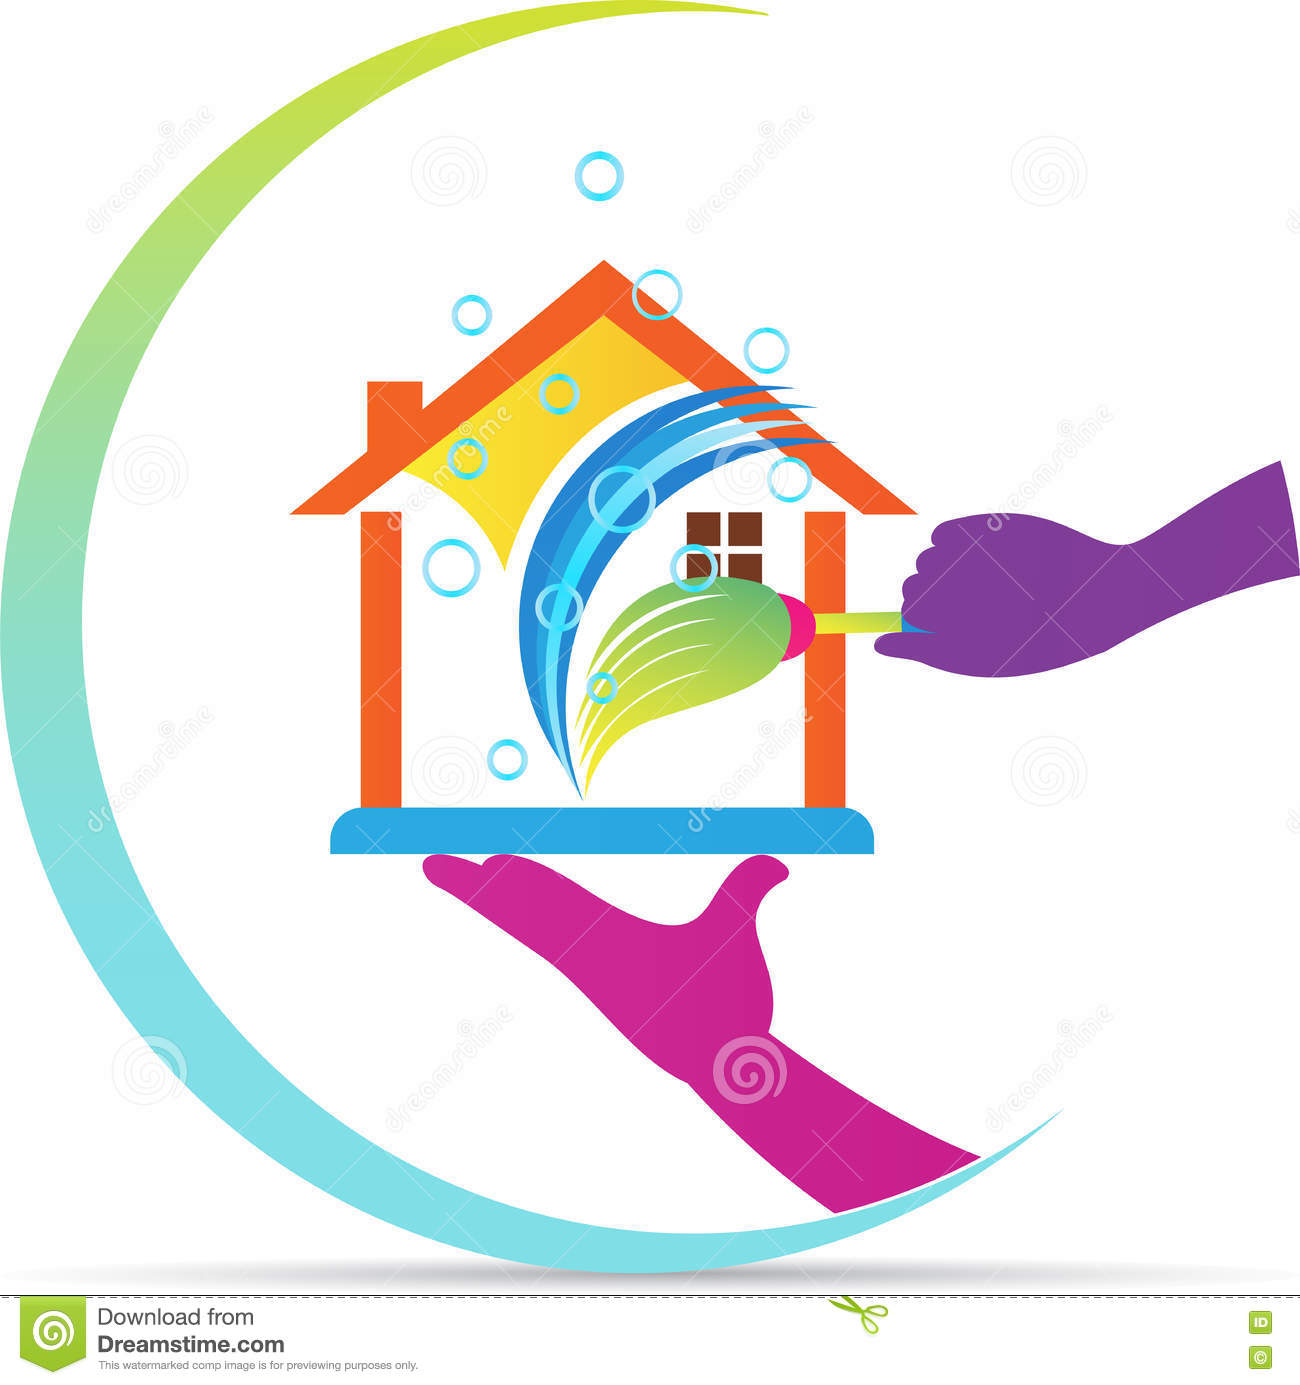 Home Cleaning Cartoon Vector Cartoondealer Com 39161467